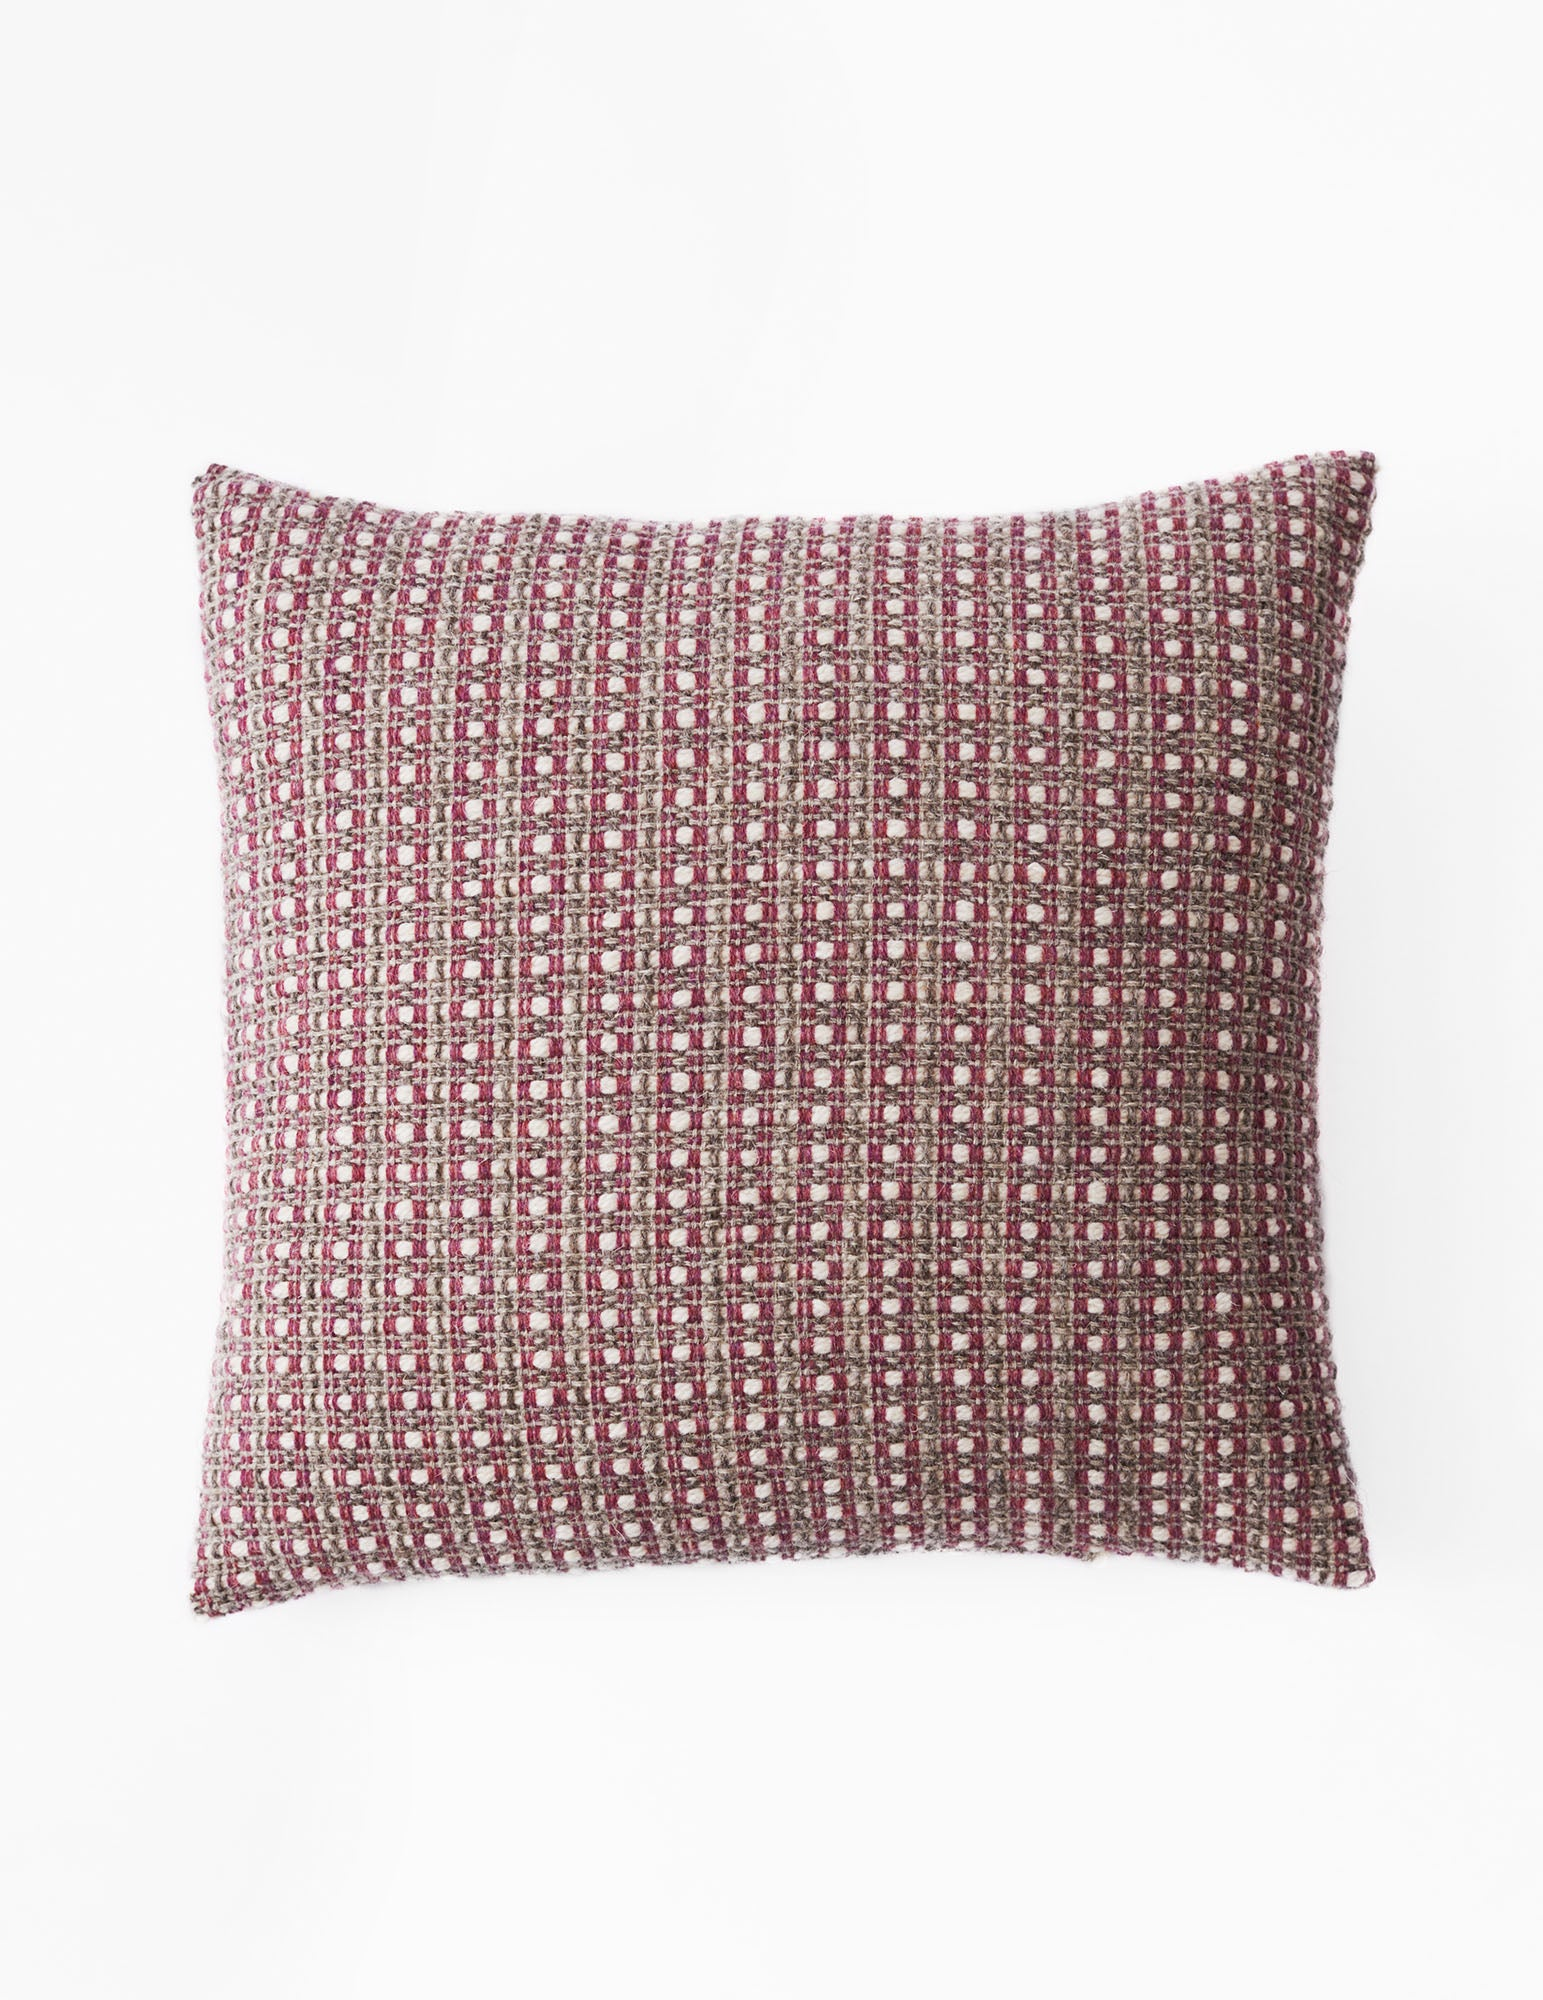 Salthill Tweed Cushion - M1